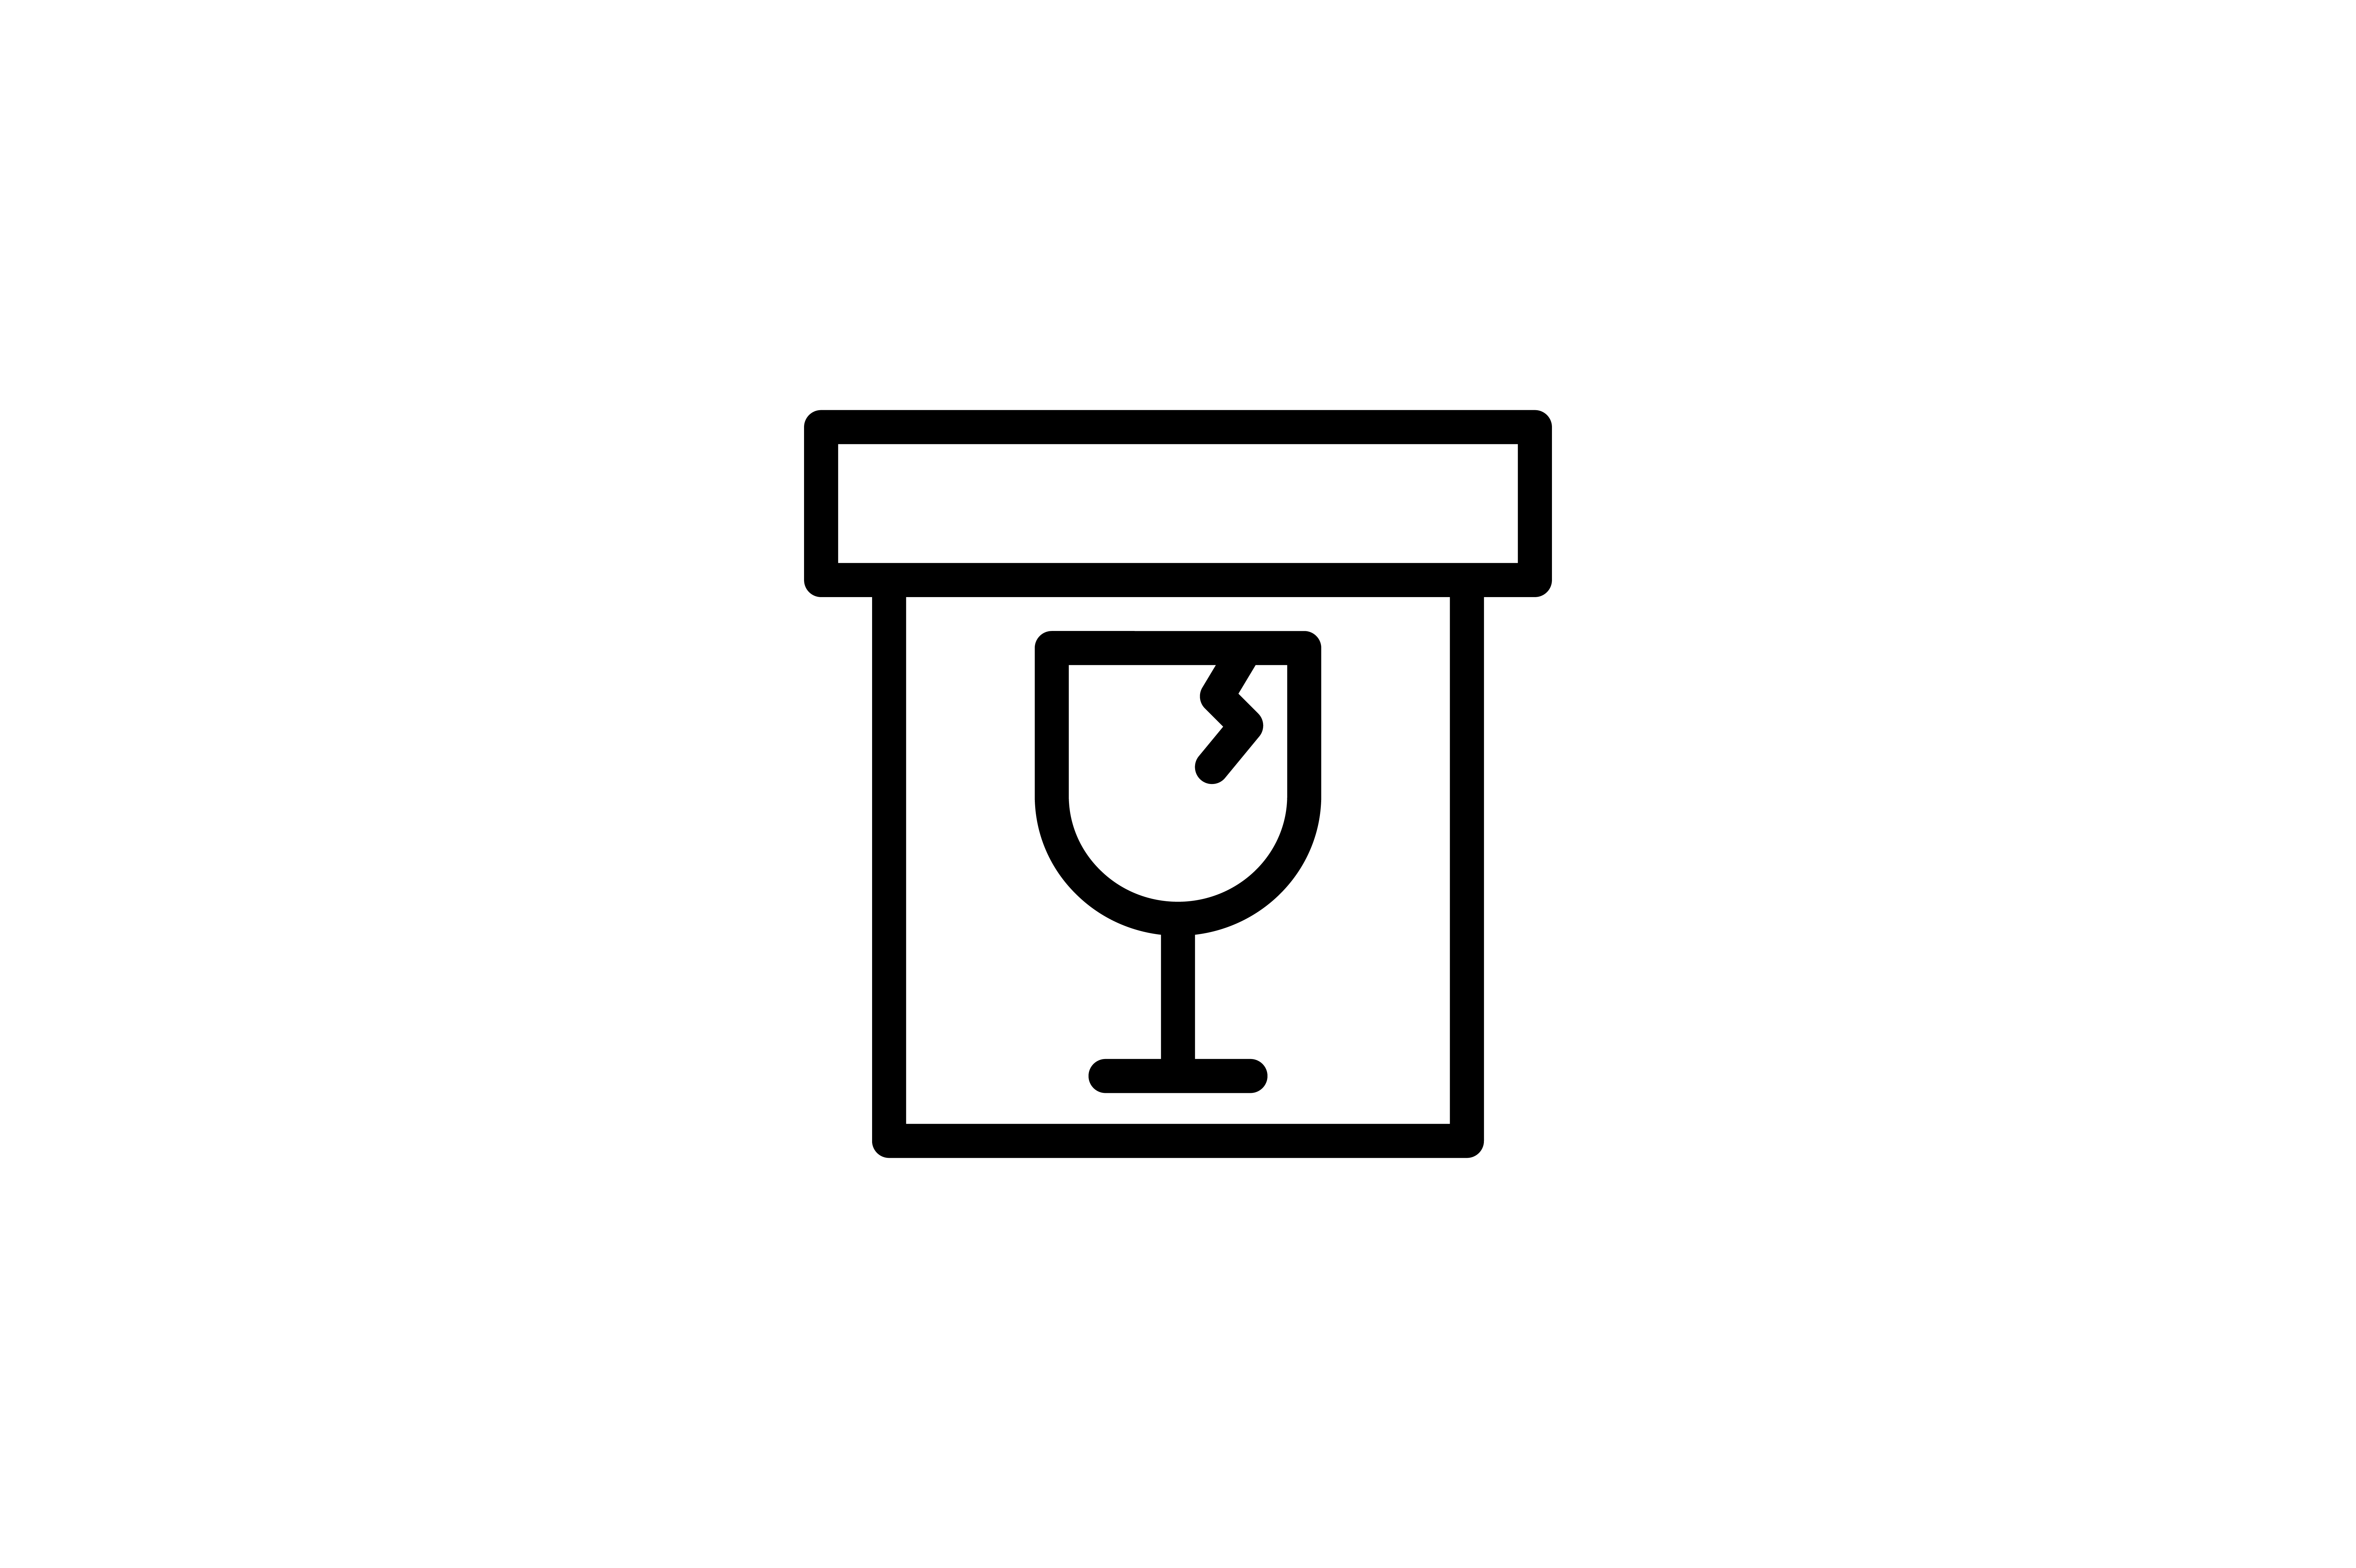 Logistic And Delivery Glass In A Box Icon Graphic By